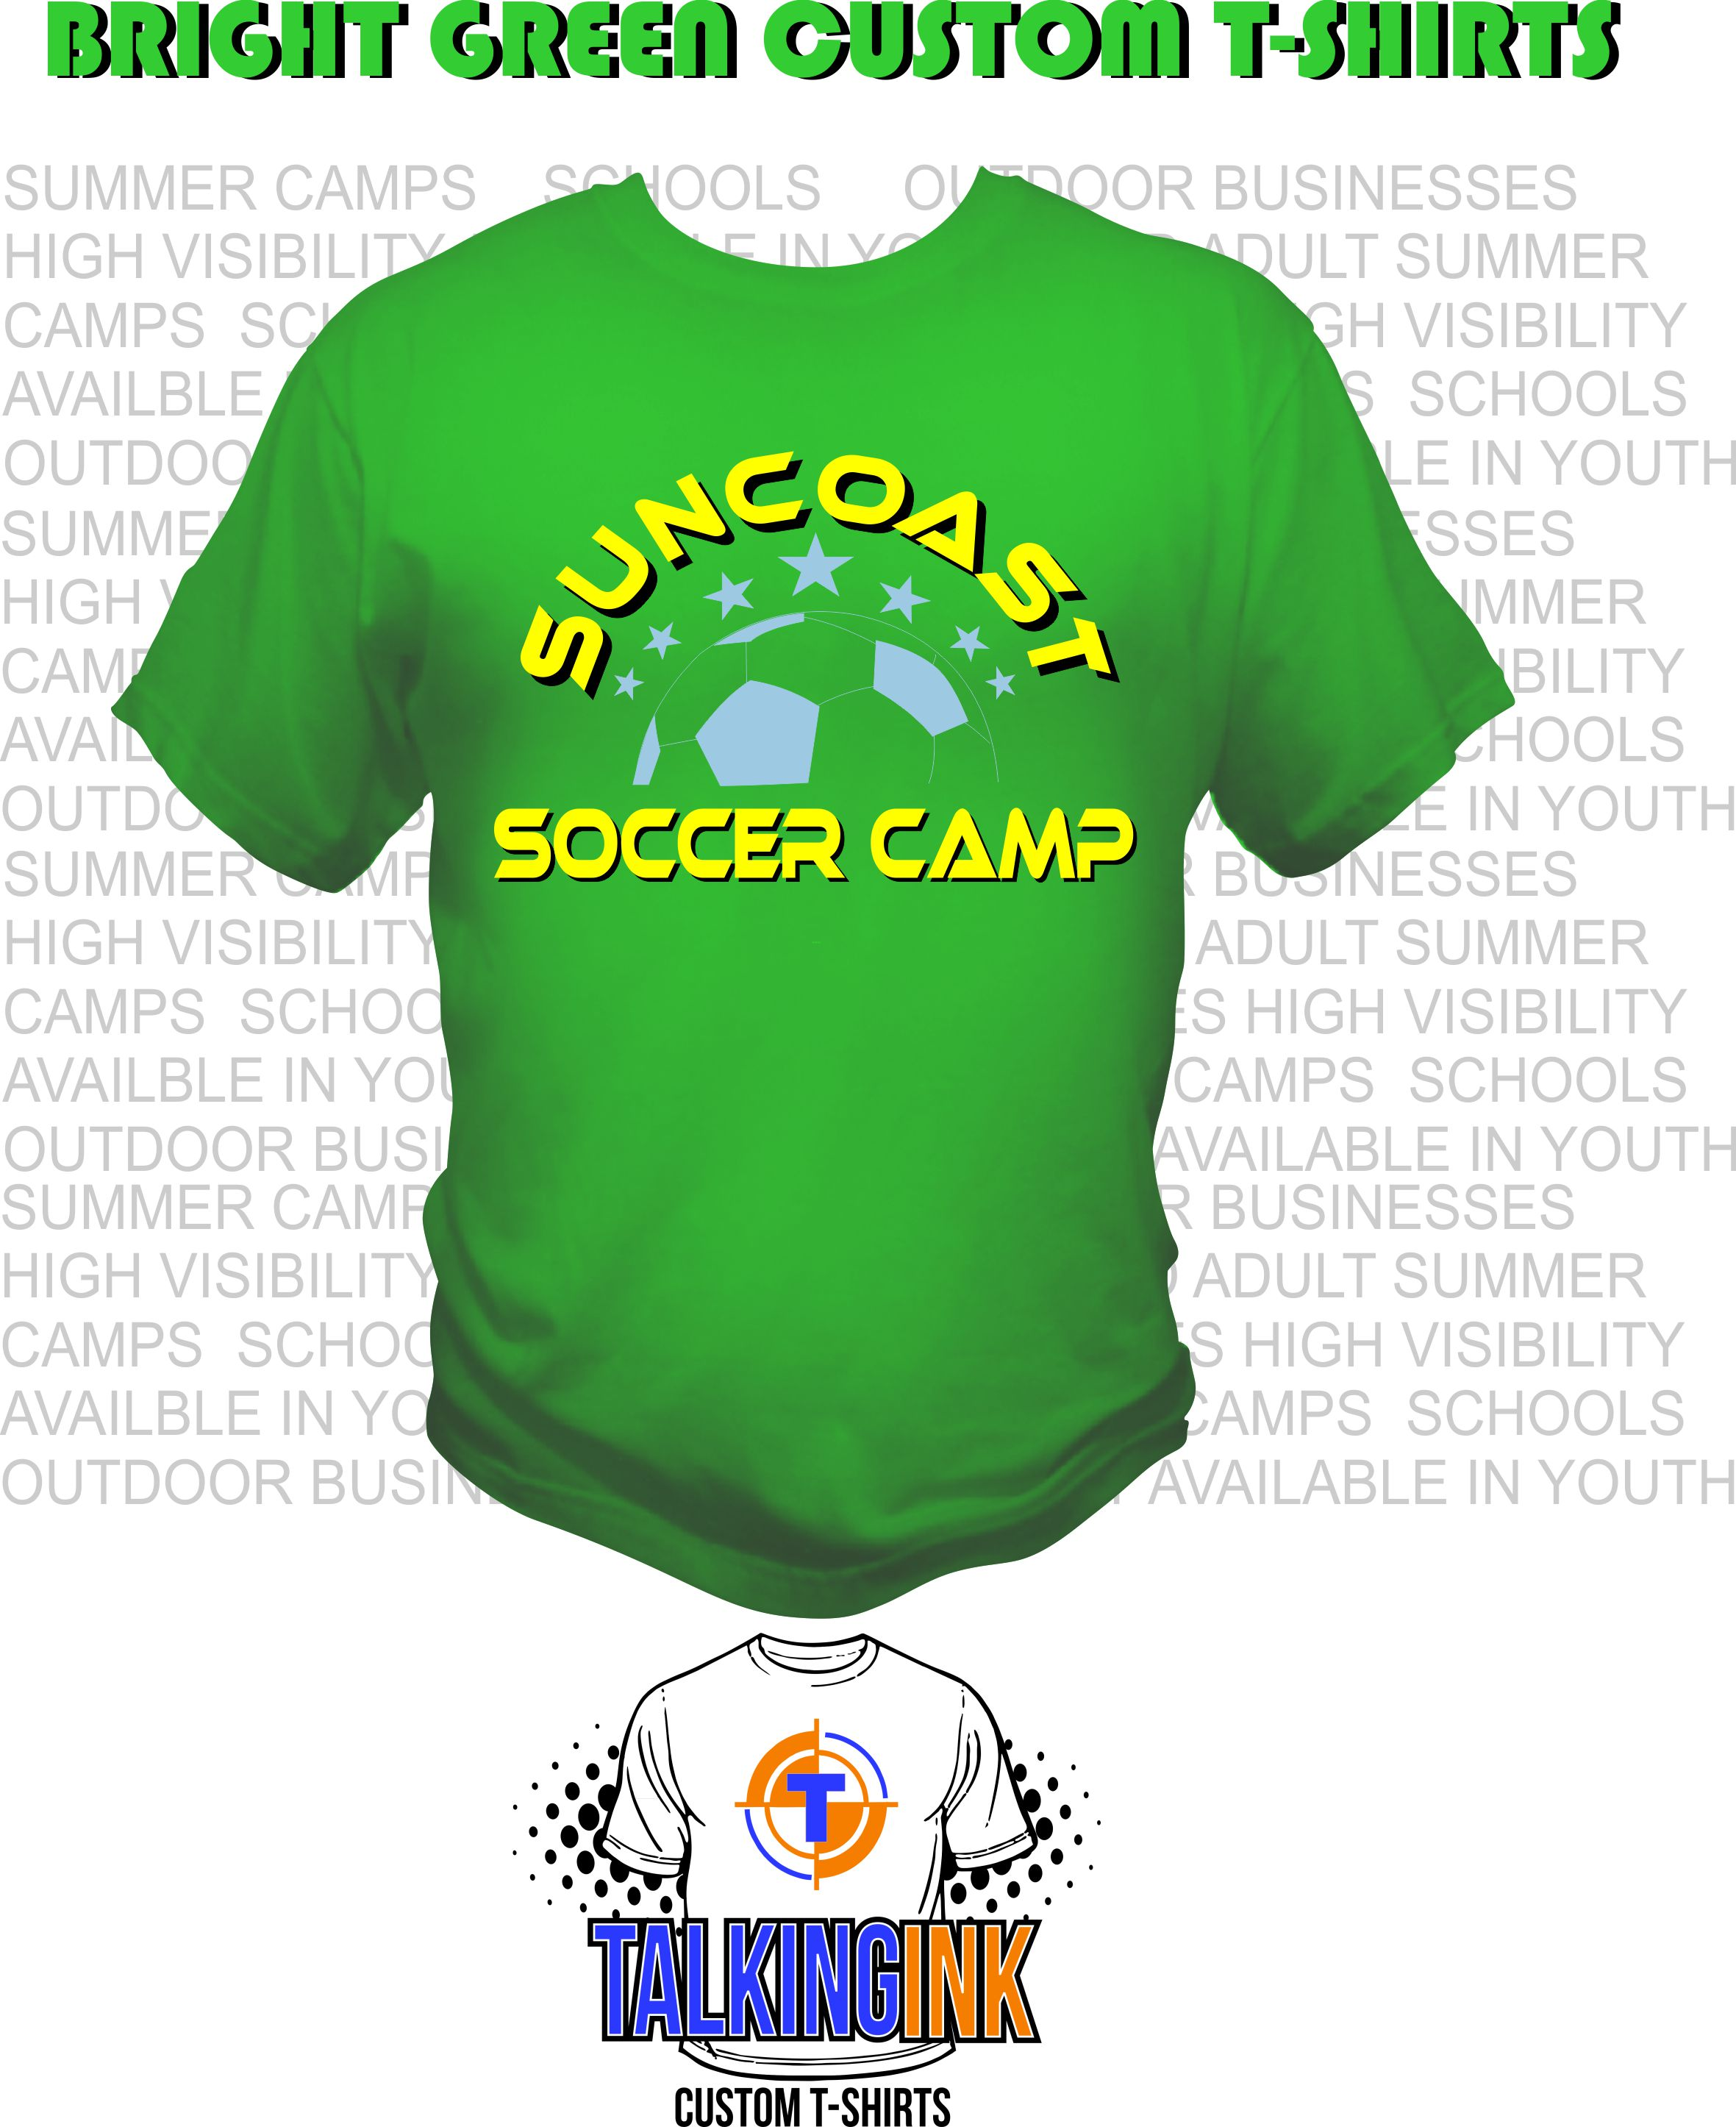 Bright Green Custom T-shirts